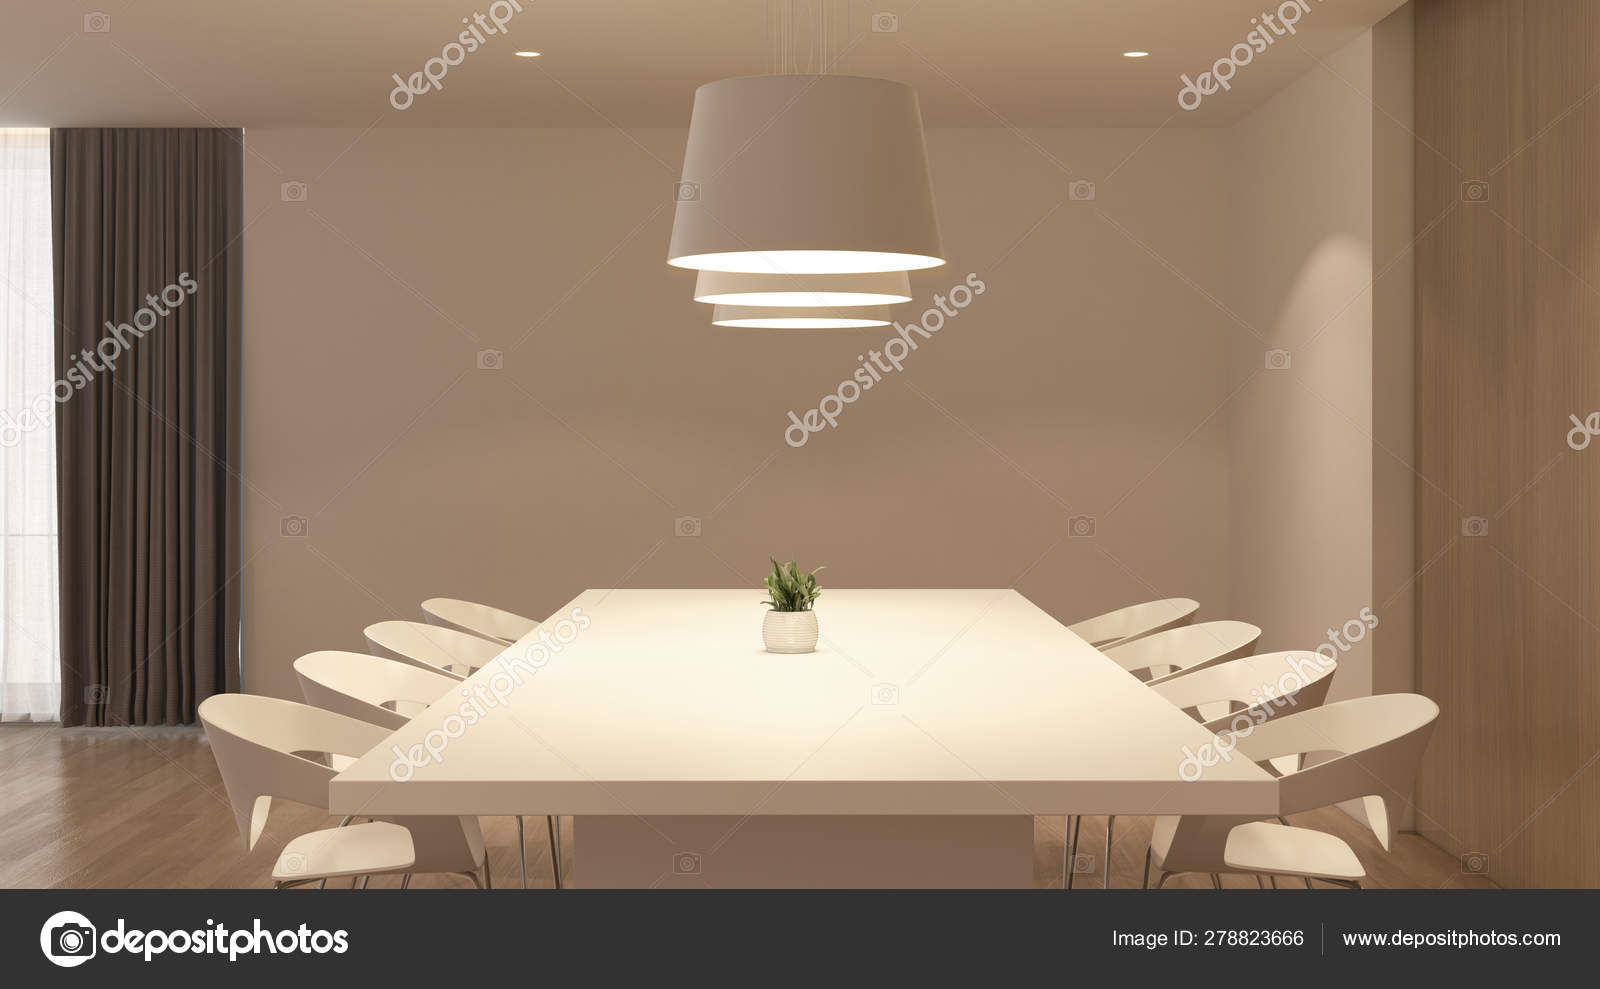 Picture of: Perspective White Modern Luxury Room Kitchen Dining Table Set Idea Stock Photo C Nuchao 278823666